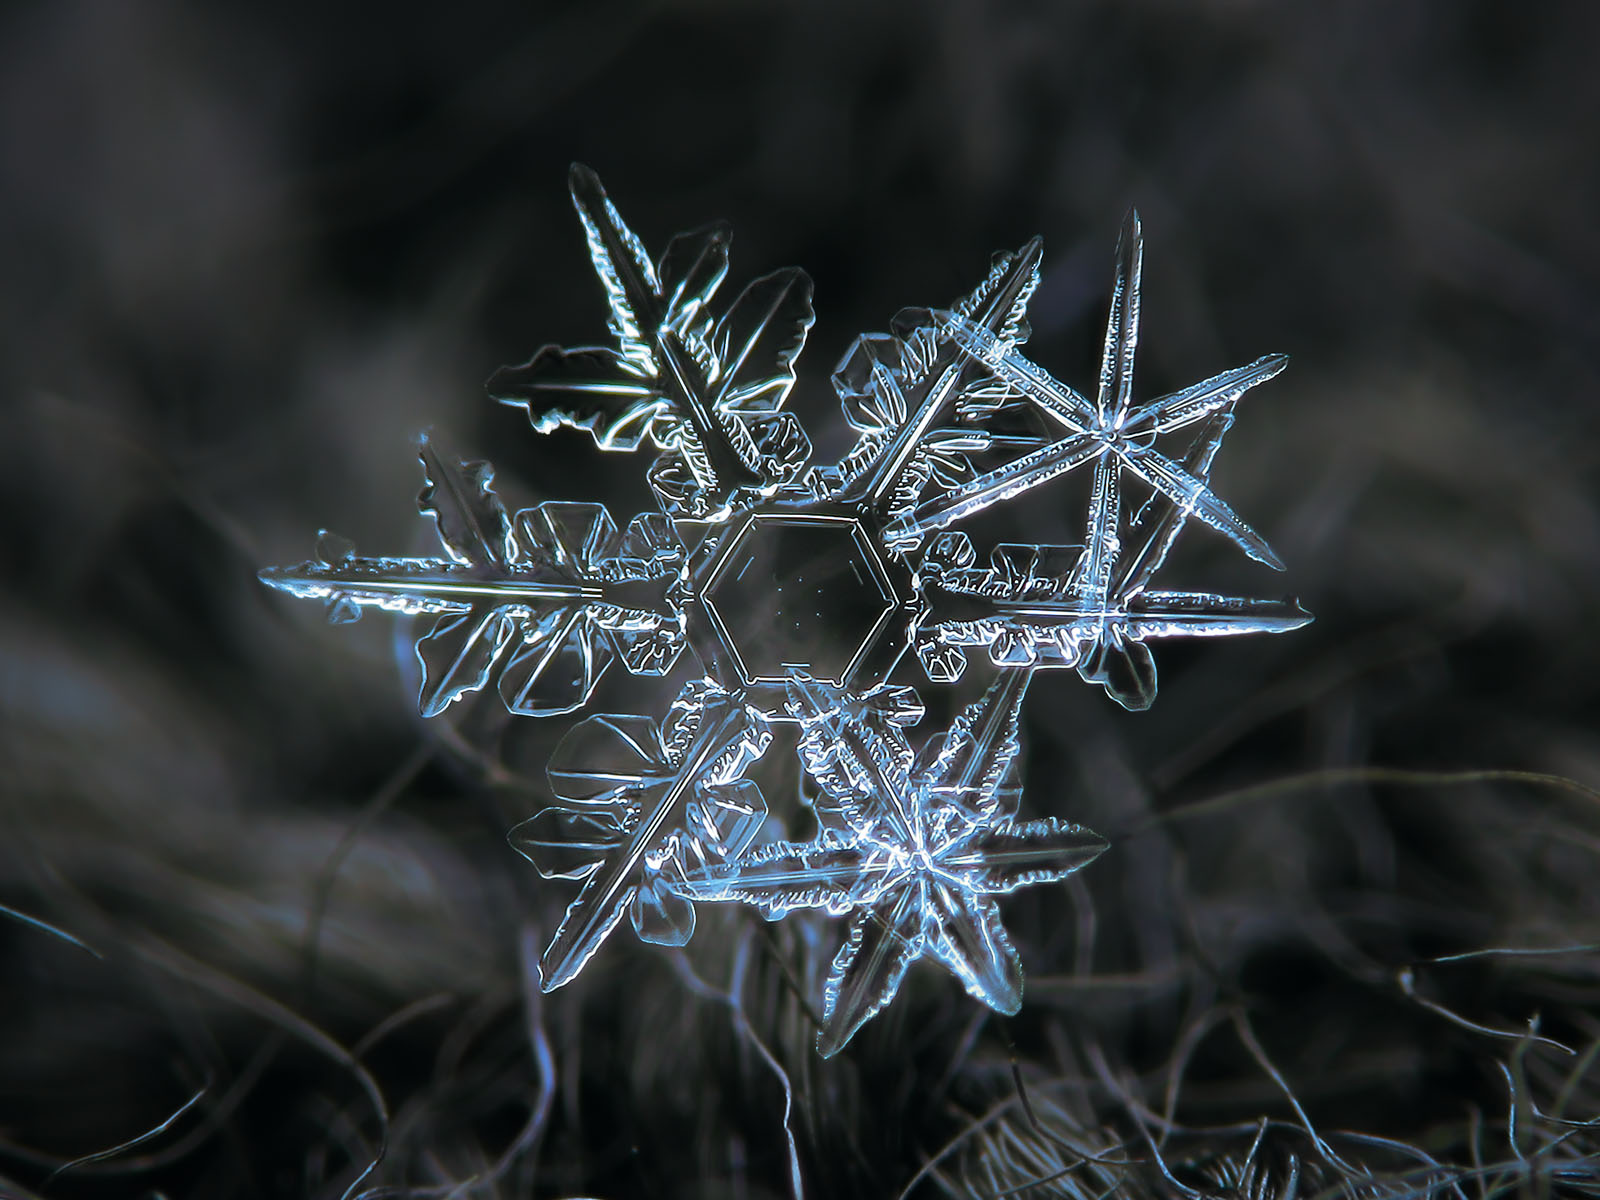 Picture of snowflakes: cluster of stellar dendrites with thin, transparent and sharp arms